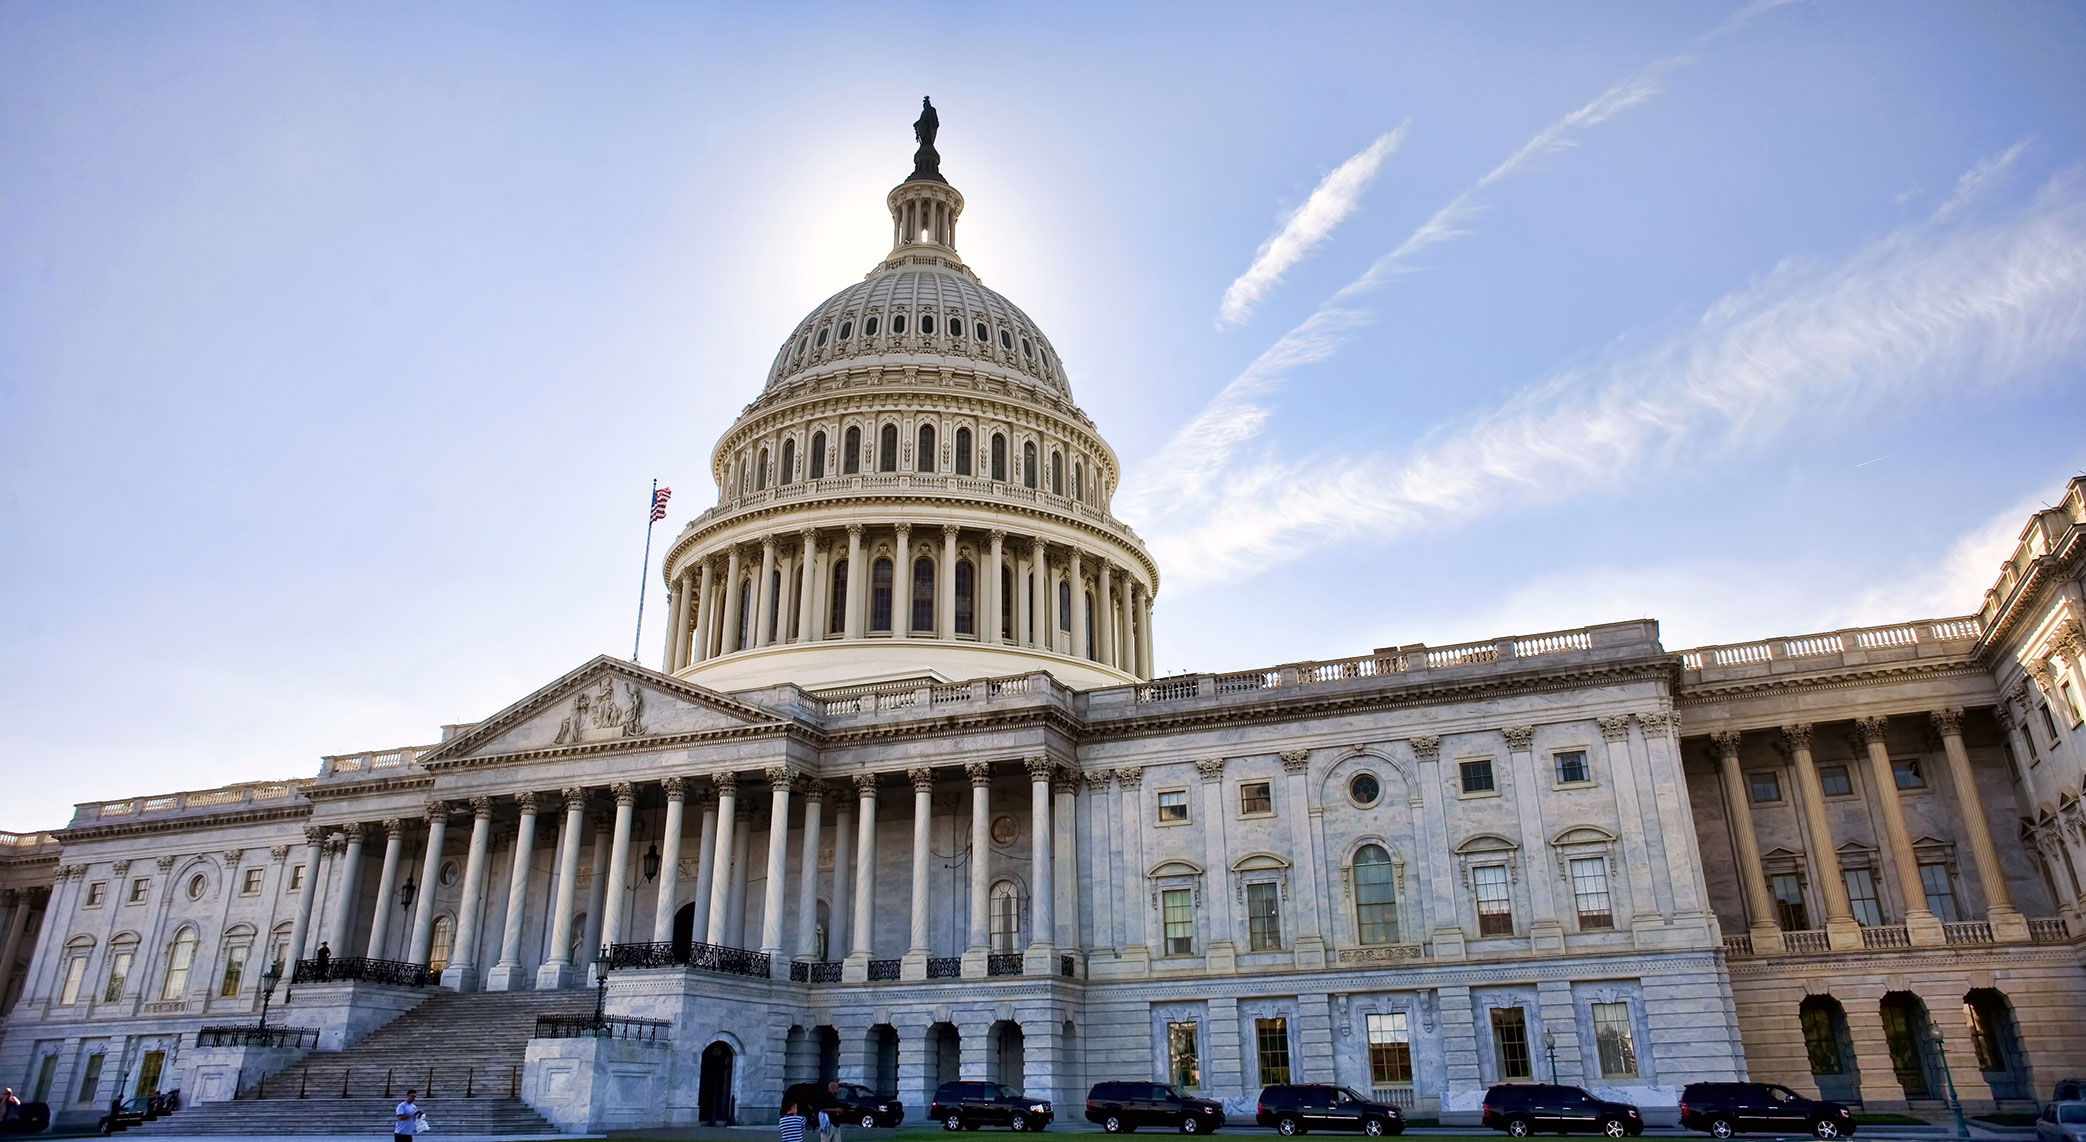 Stakeholders Ask Congress for Hearings on SUPPORT Act Implementation